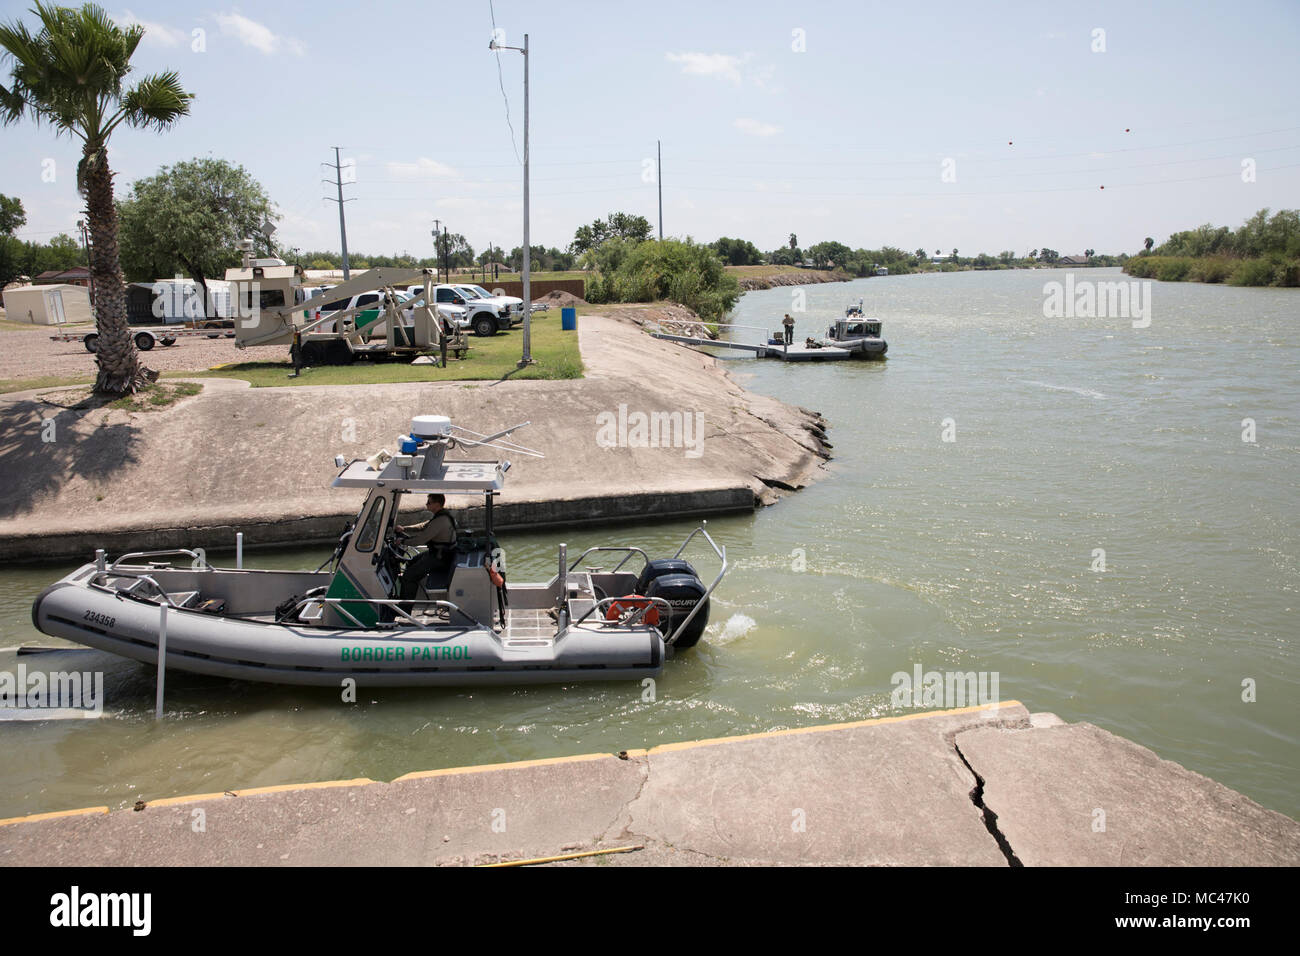 The U.S. Border Patrol works boats on the Rio Grande River south of McAllen, TX at Anzalduas Park on the U.S.-Mexico border. An uptick in illegal crossings has occurred the past three months. Stock Photo